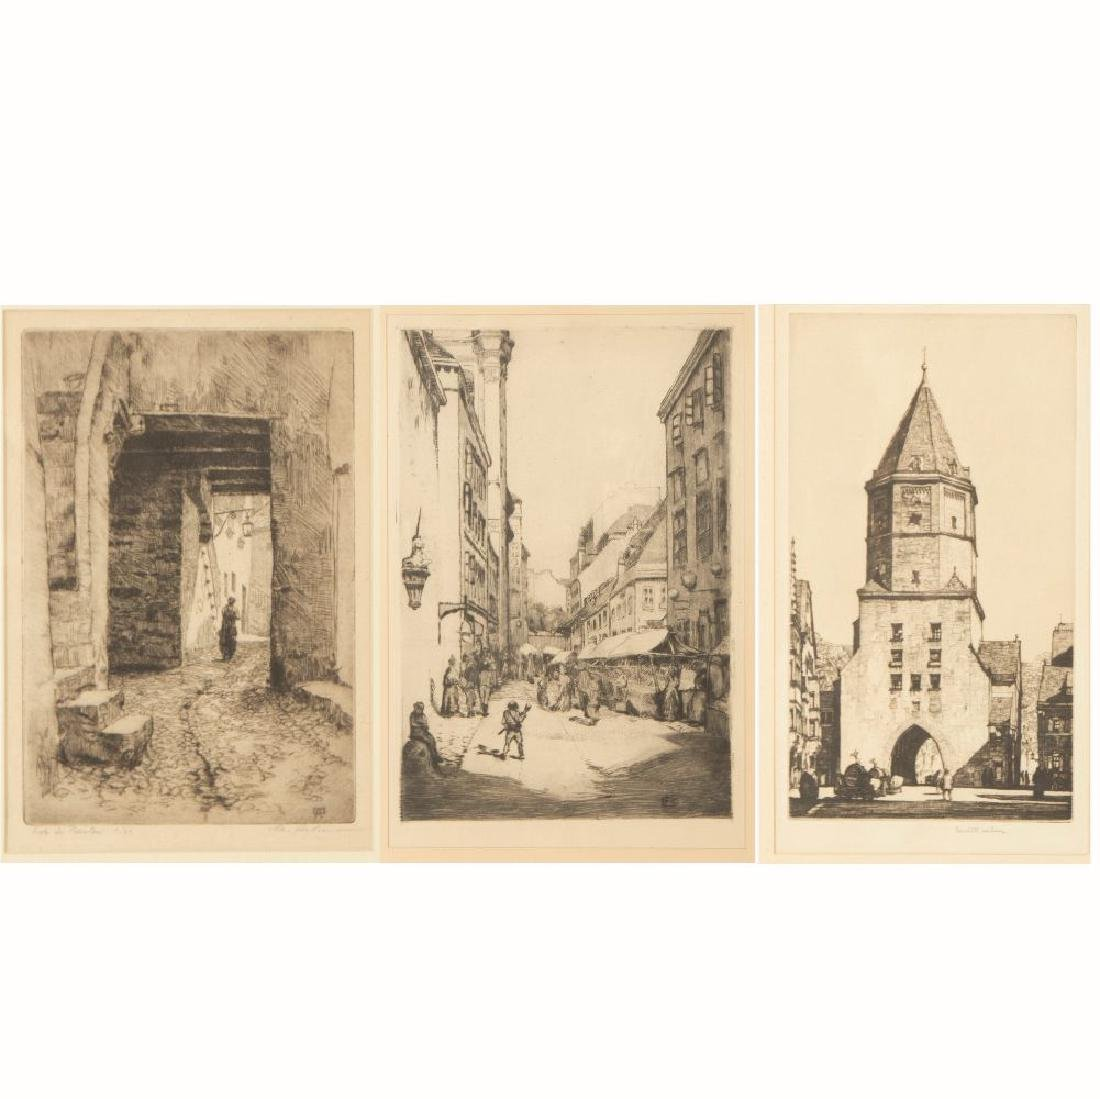 A Group of Three Etchings by Various Artists, 19th/20th